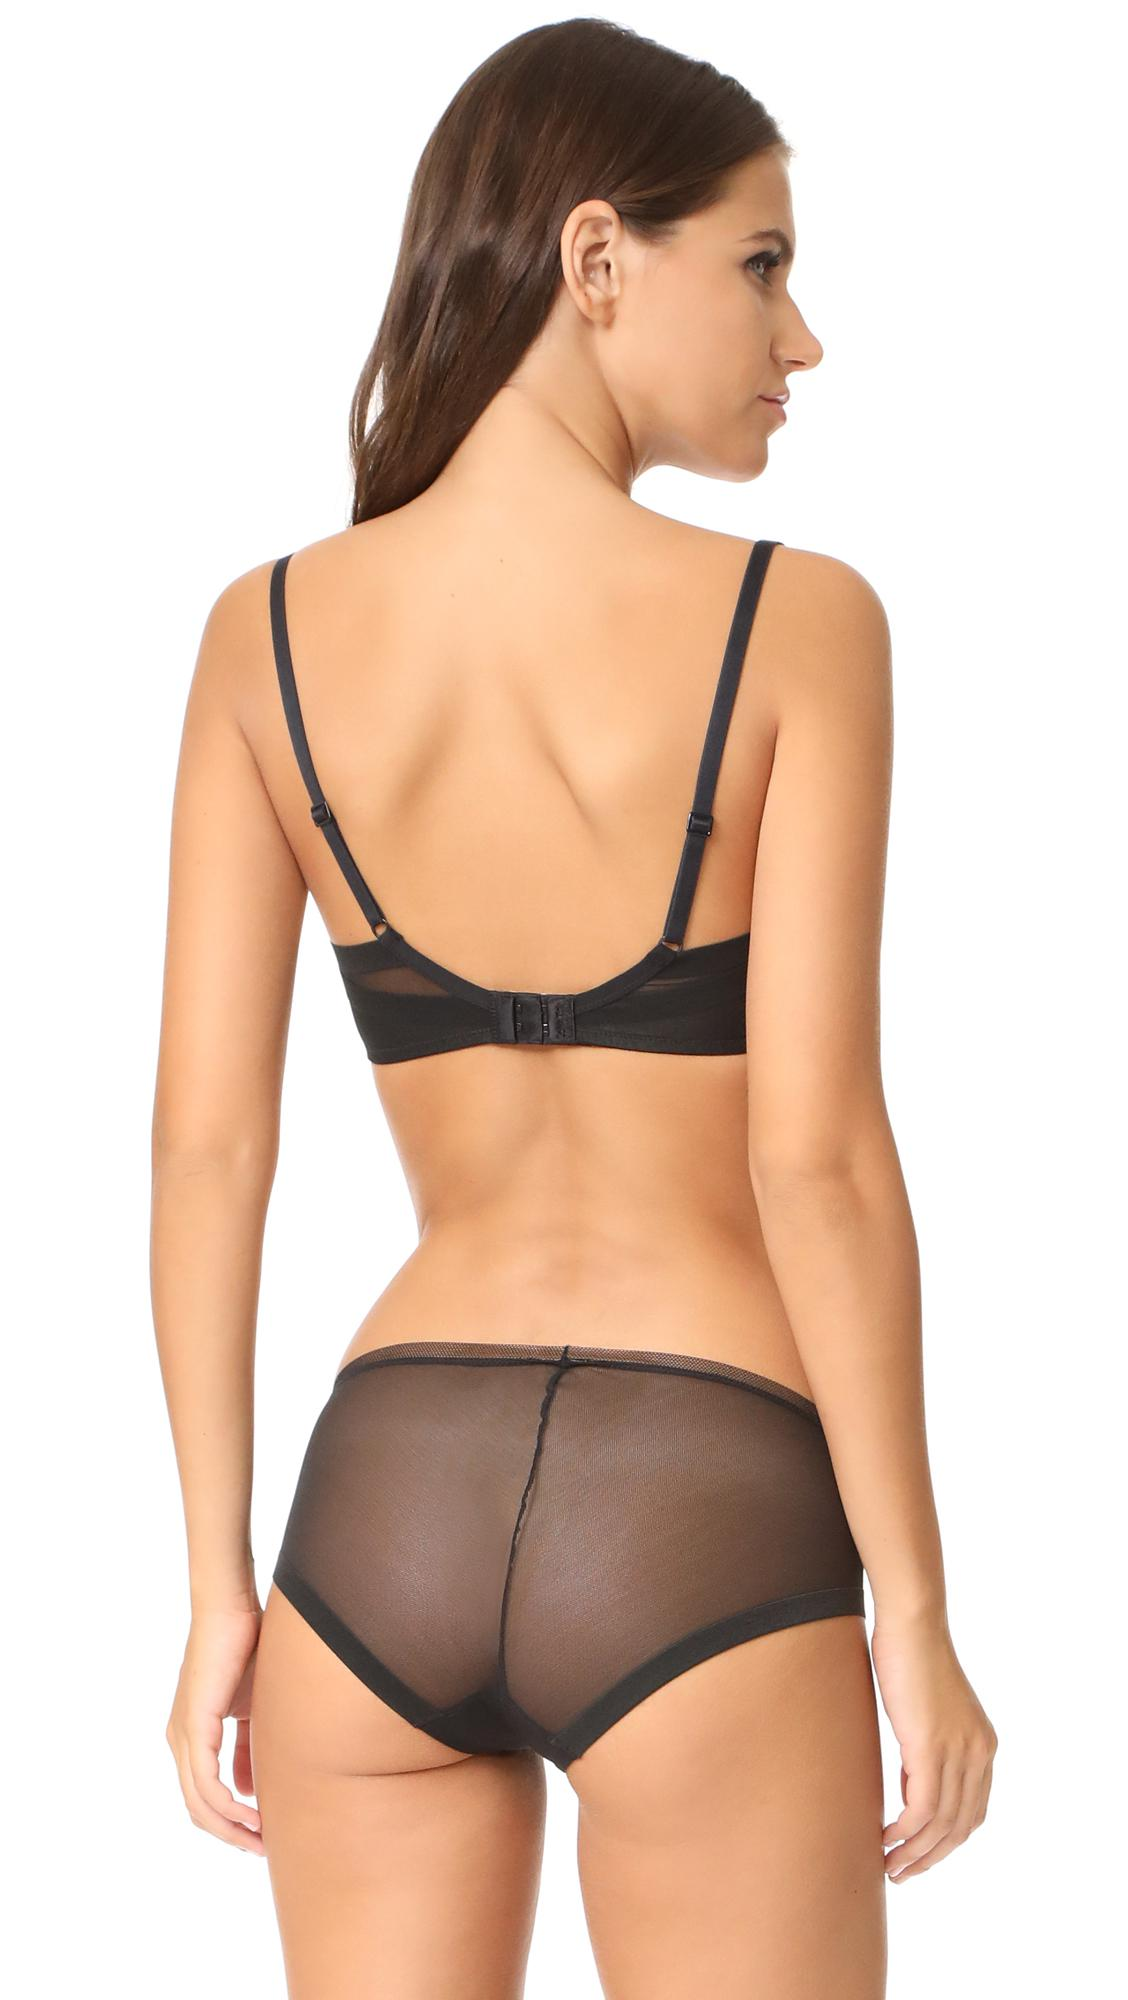 a0d62a5556 Lyst - Calvin Klein Sculpted Lightly Lined Triangle Bra in Black